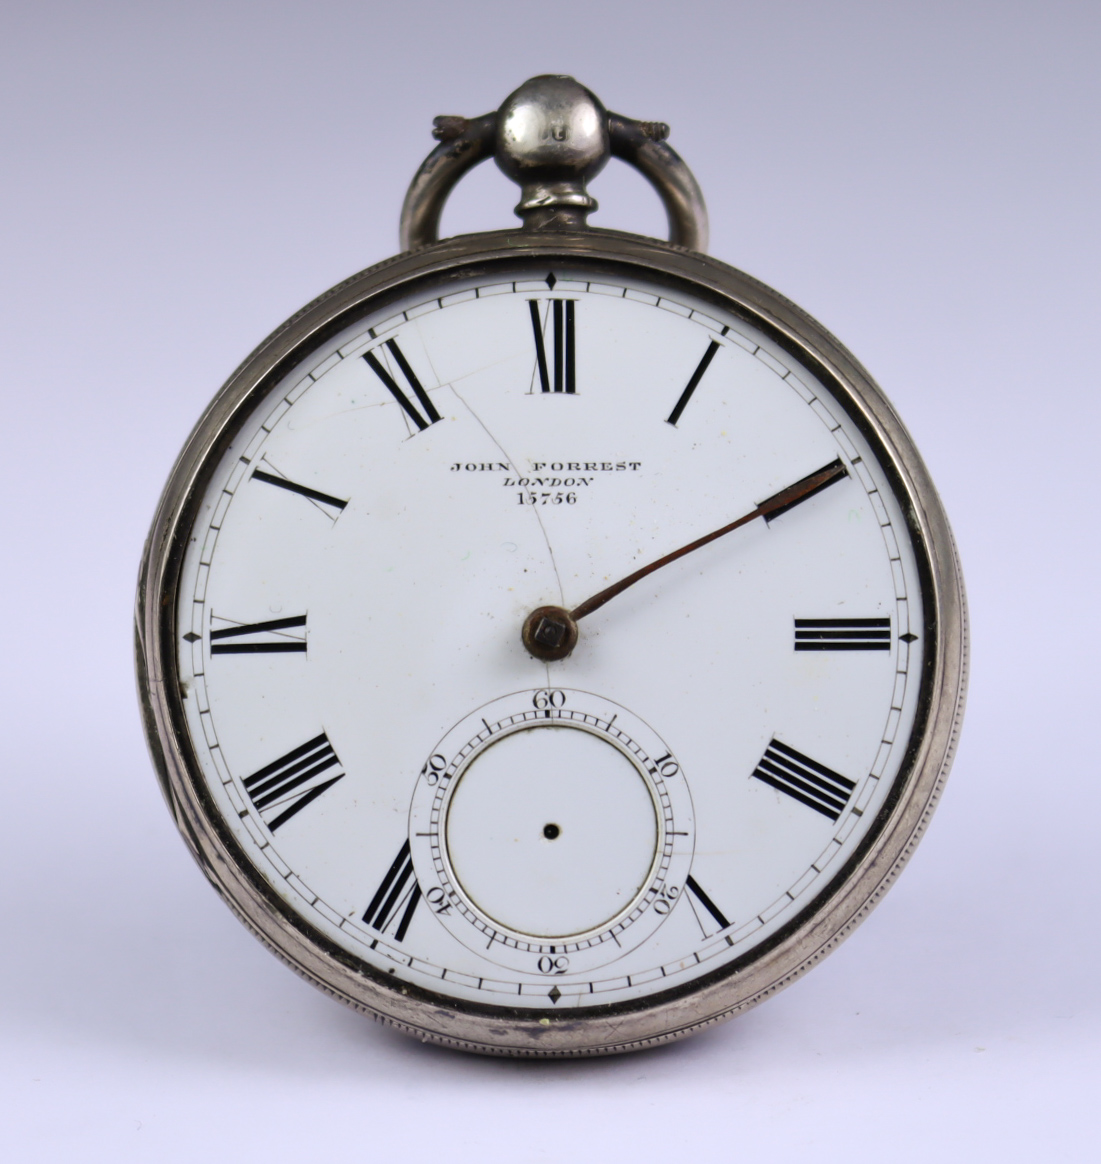 Three Silver Cased Open Faced Fusee Lever Pocket Watches, comprising - one by John Forrest,